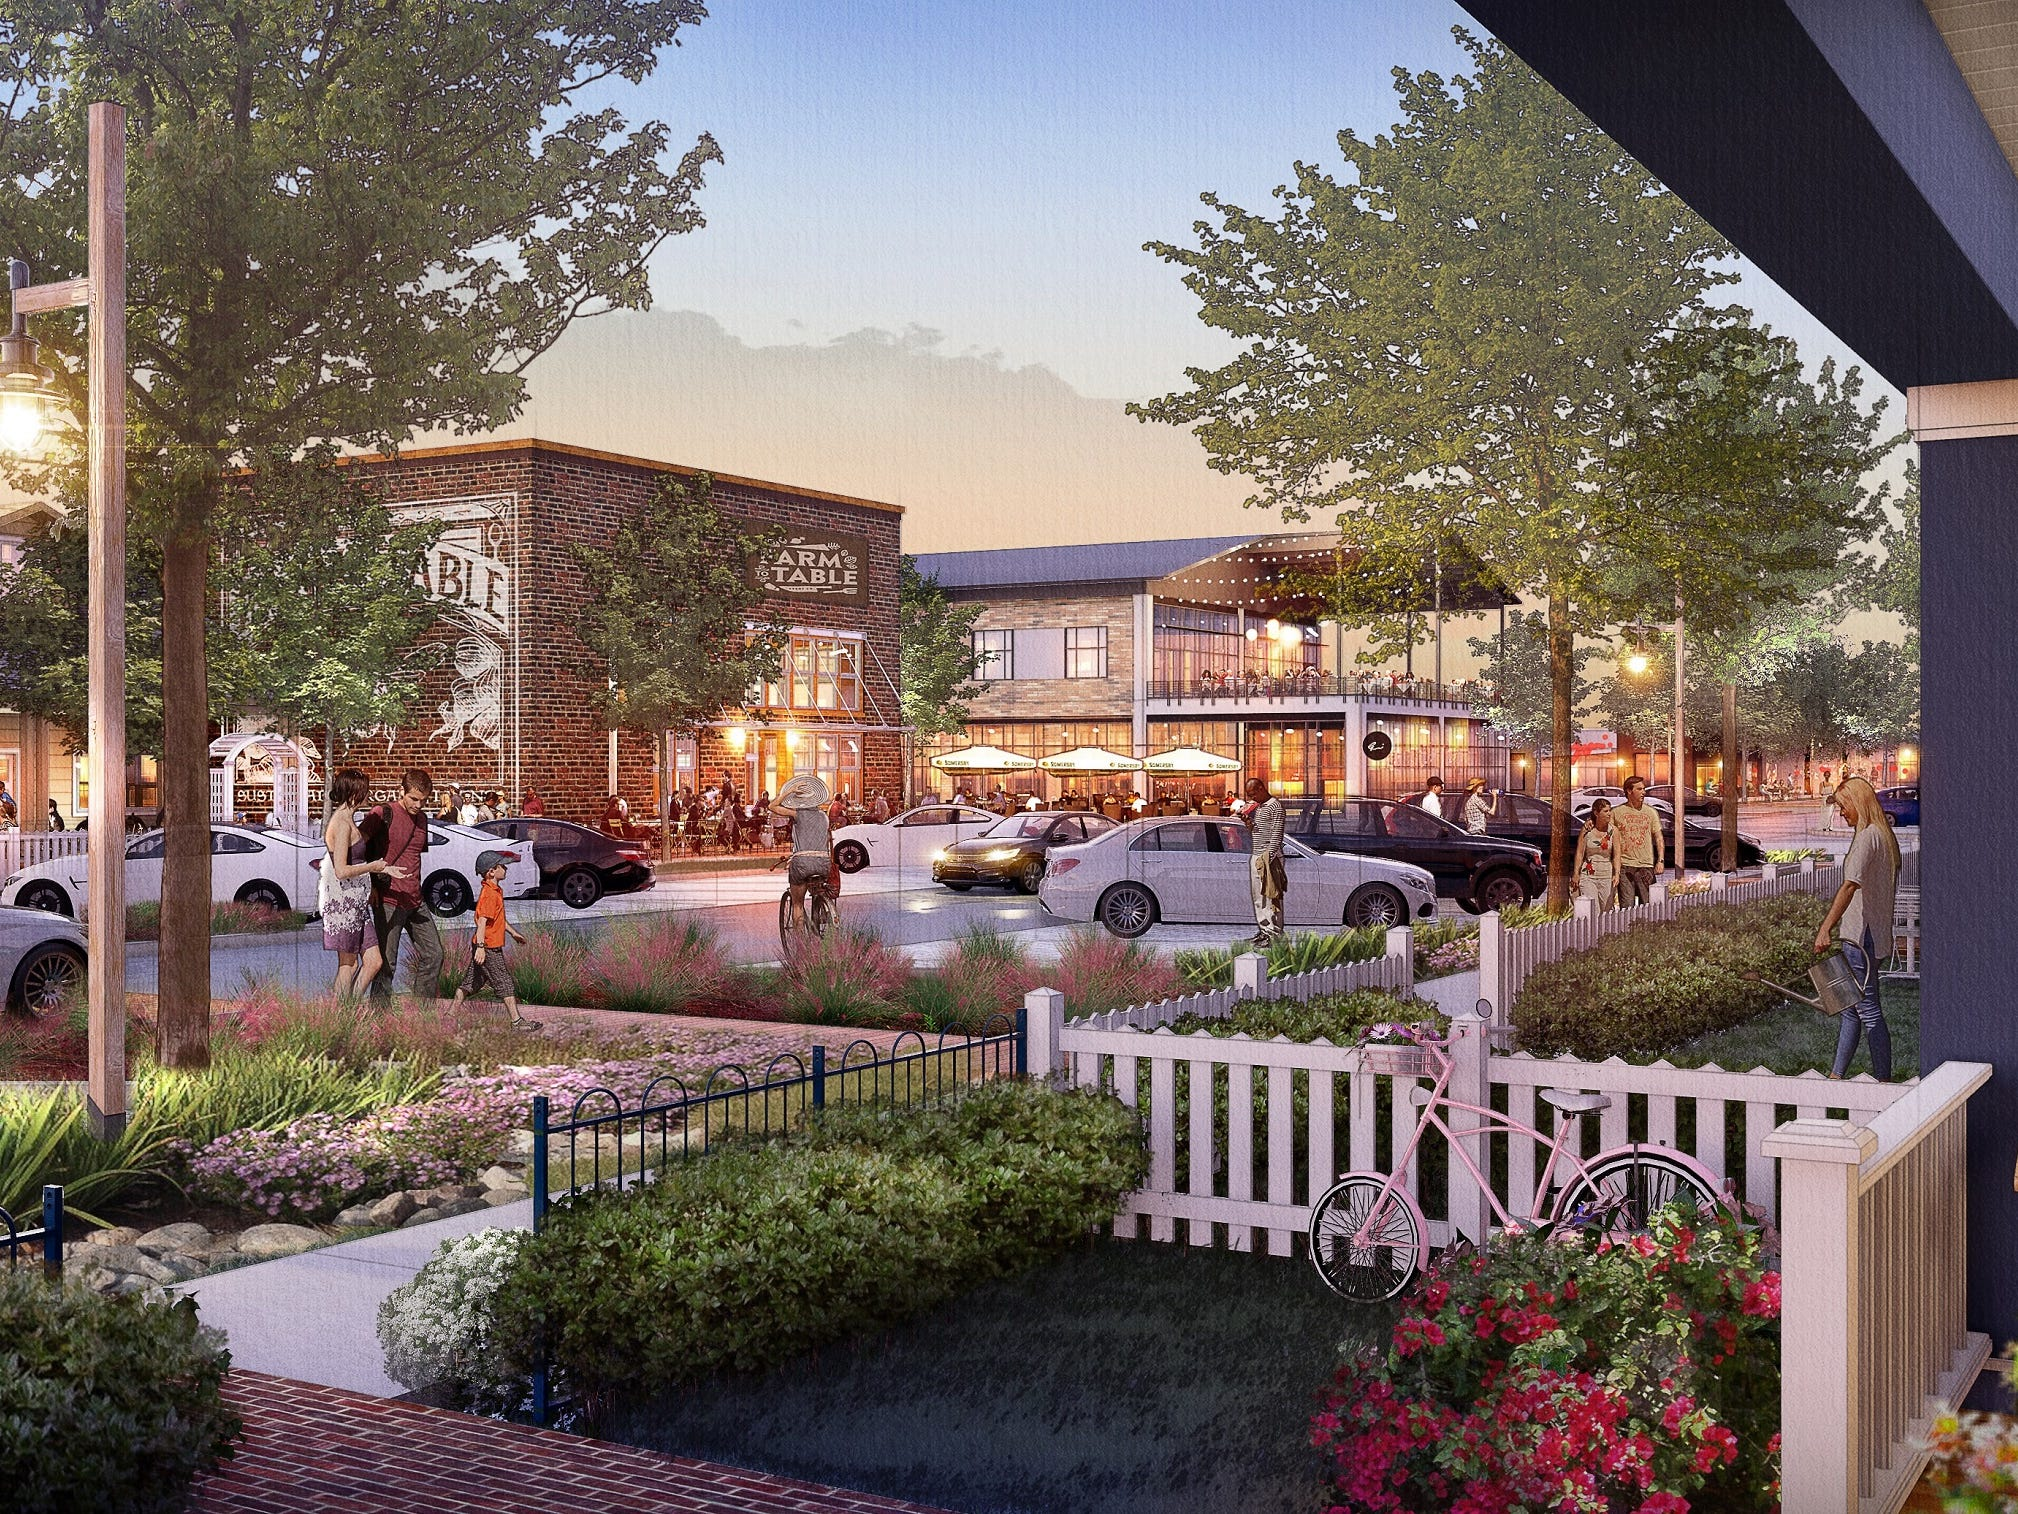 Goodbye, city life: Iowa's first 'agrihood' promises country living on edge of Des Moines